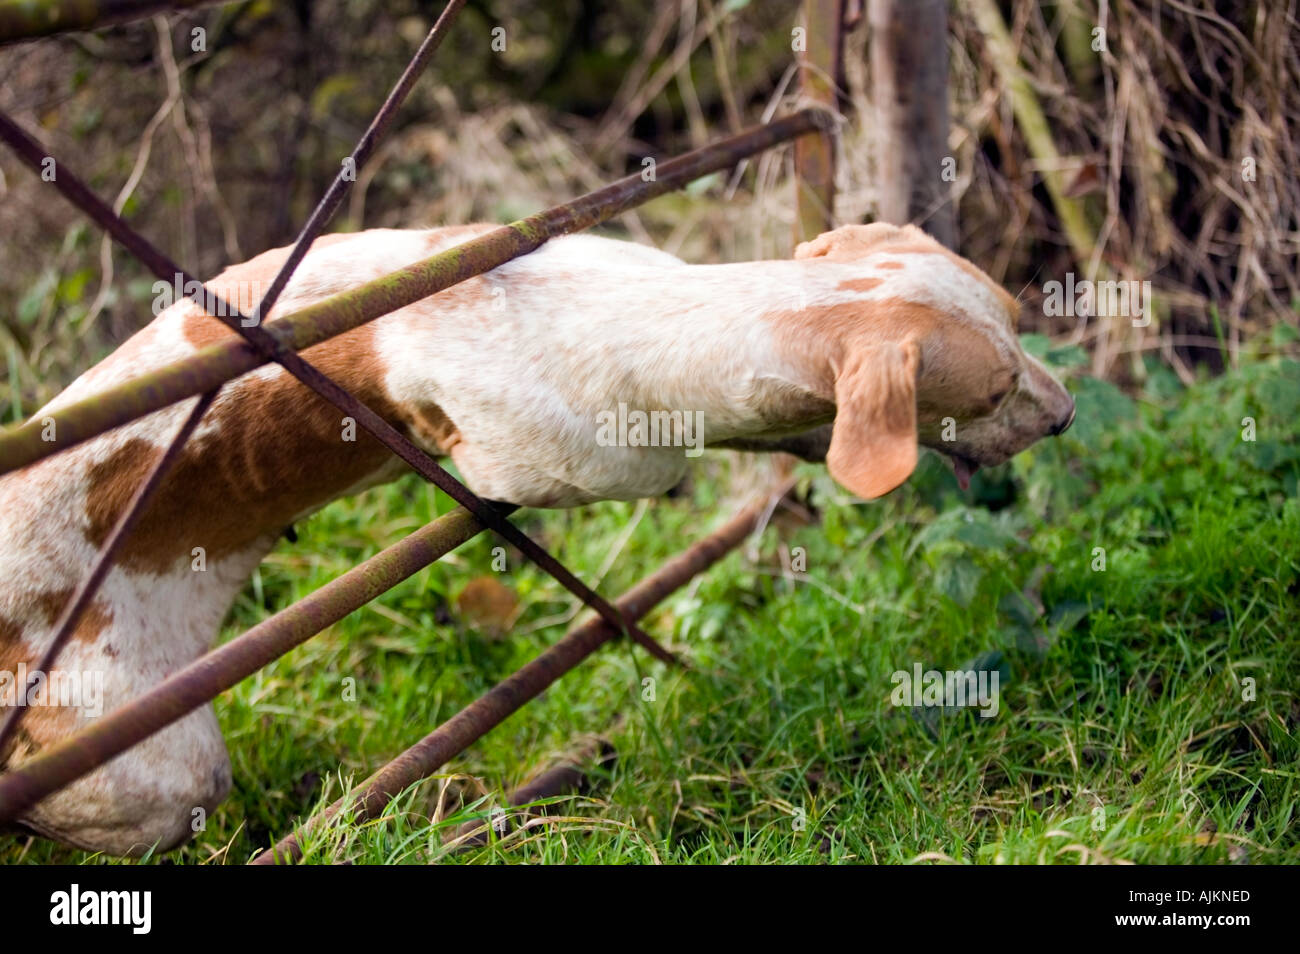 Fox hound jumping through five bar gate - Stock Image